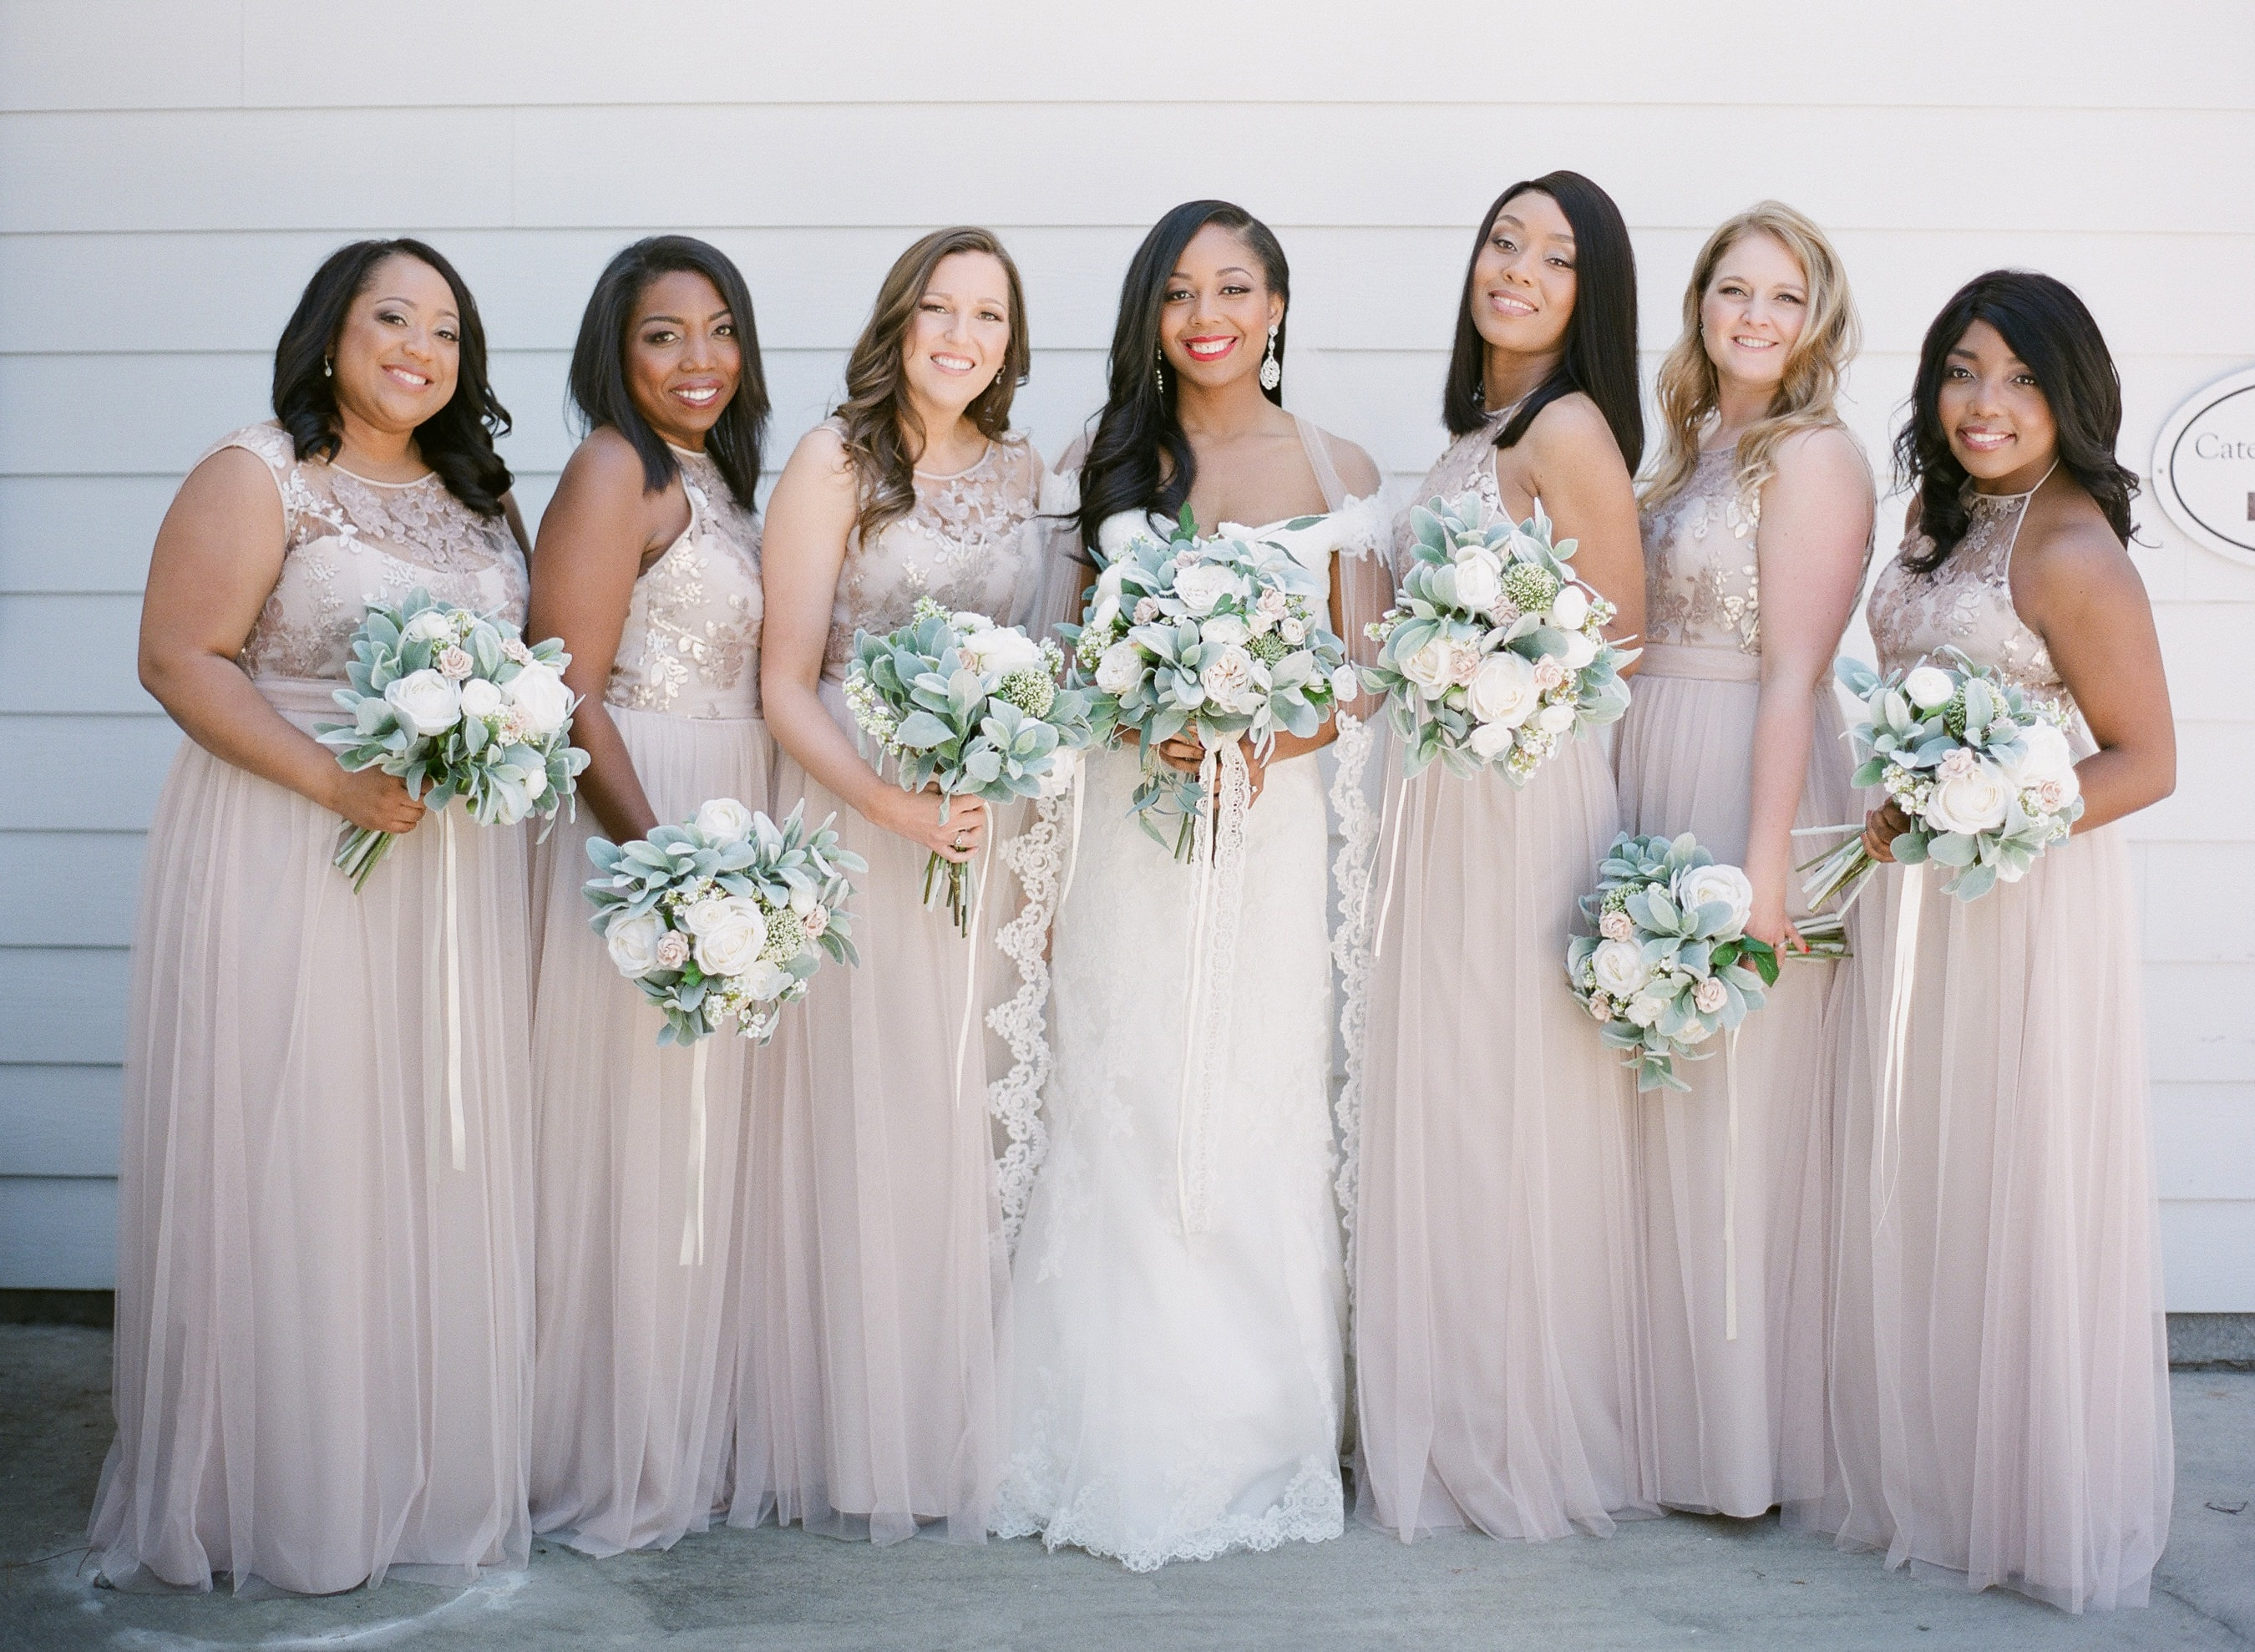 Almond Leaf Studios captured bride and bridesmaids before their wedding ceremony coordinated by Magnificent Moments Weddings